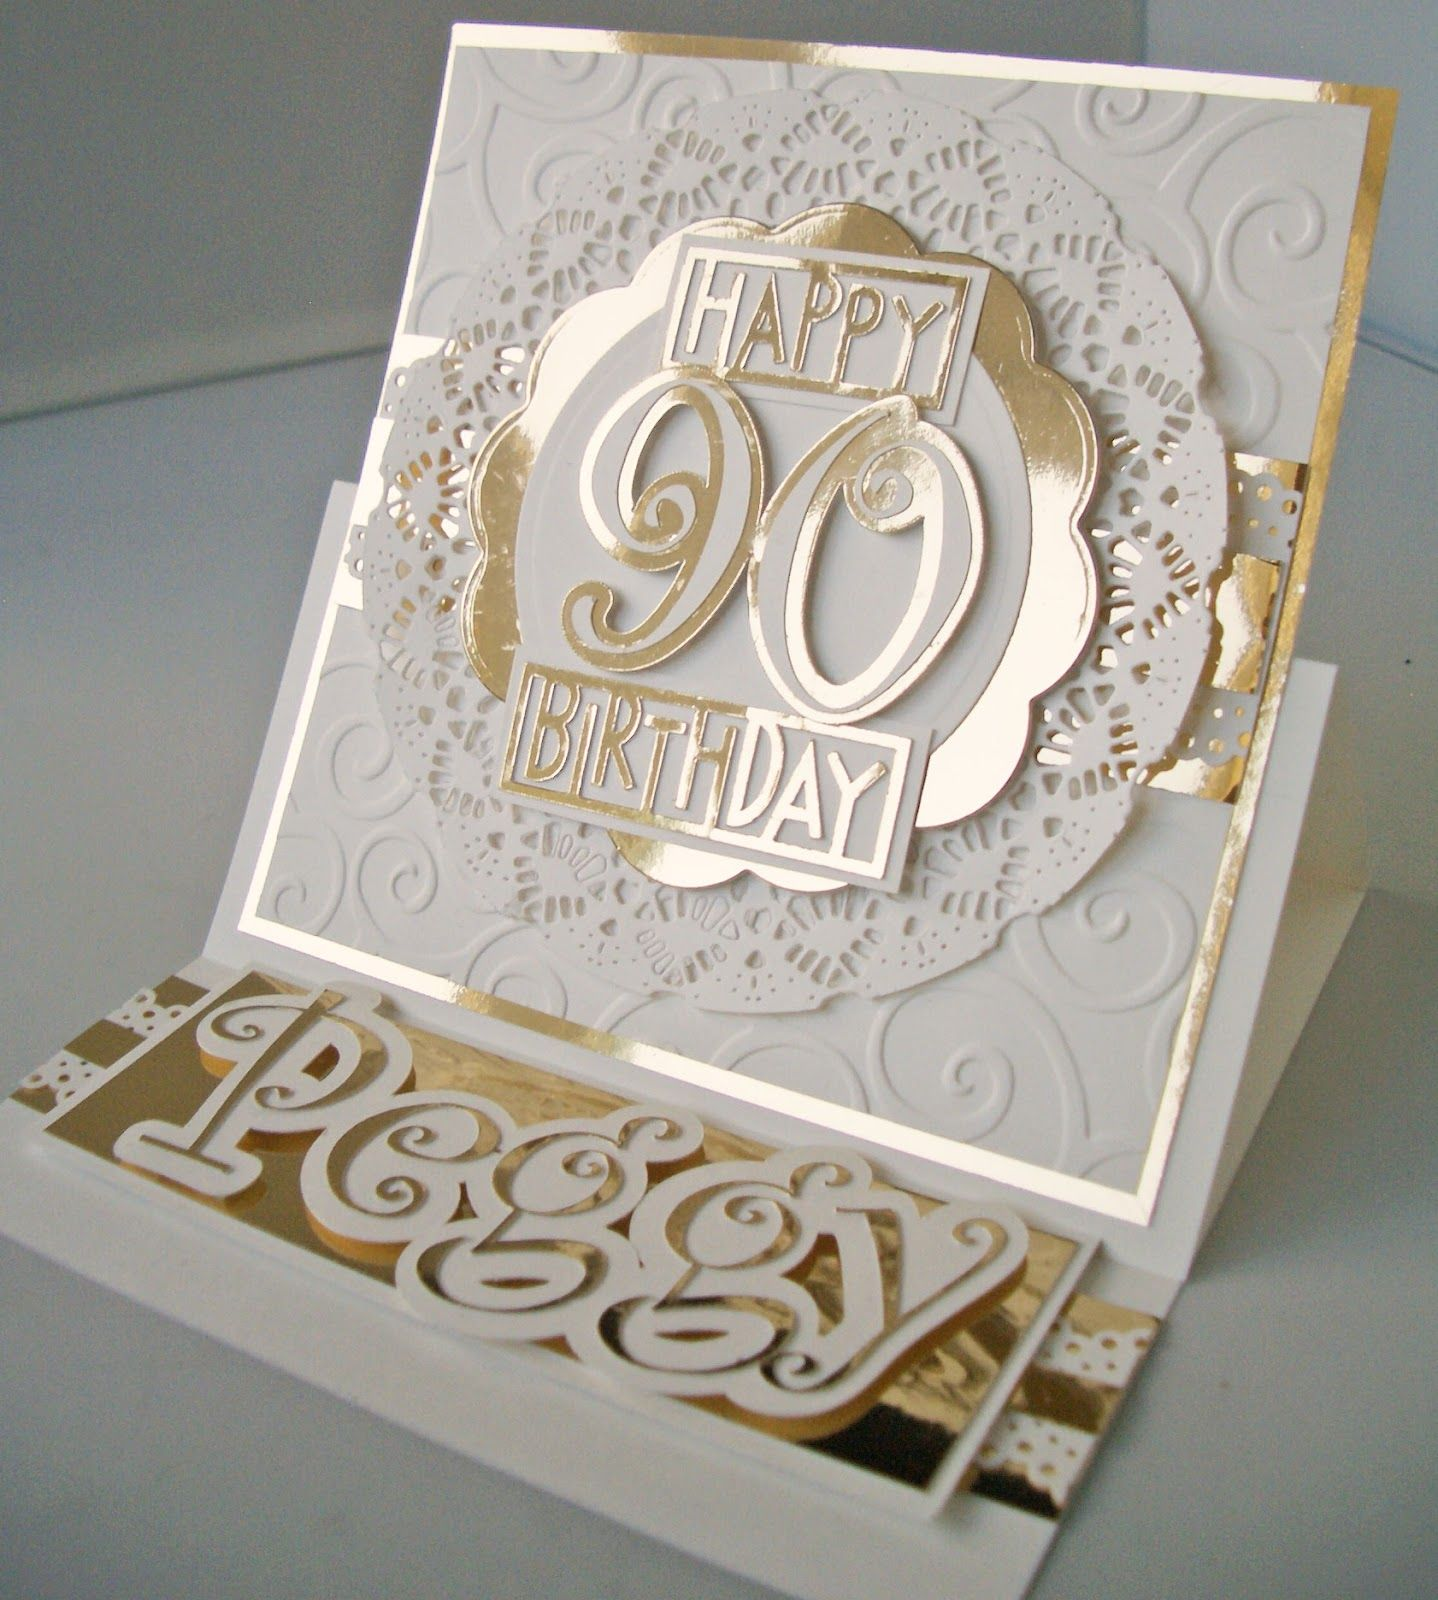 The Oldest Member Of The Church That I Attend Was 90 This Weekend And I 39 M Showing The Card I Special Birthday Cards Birthday Cards For Women Birthday Cards